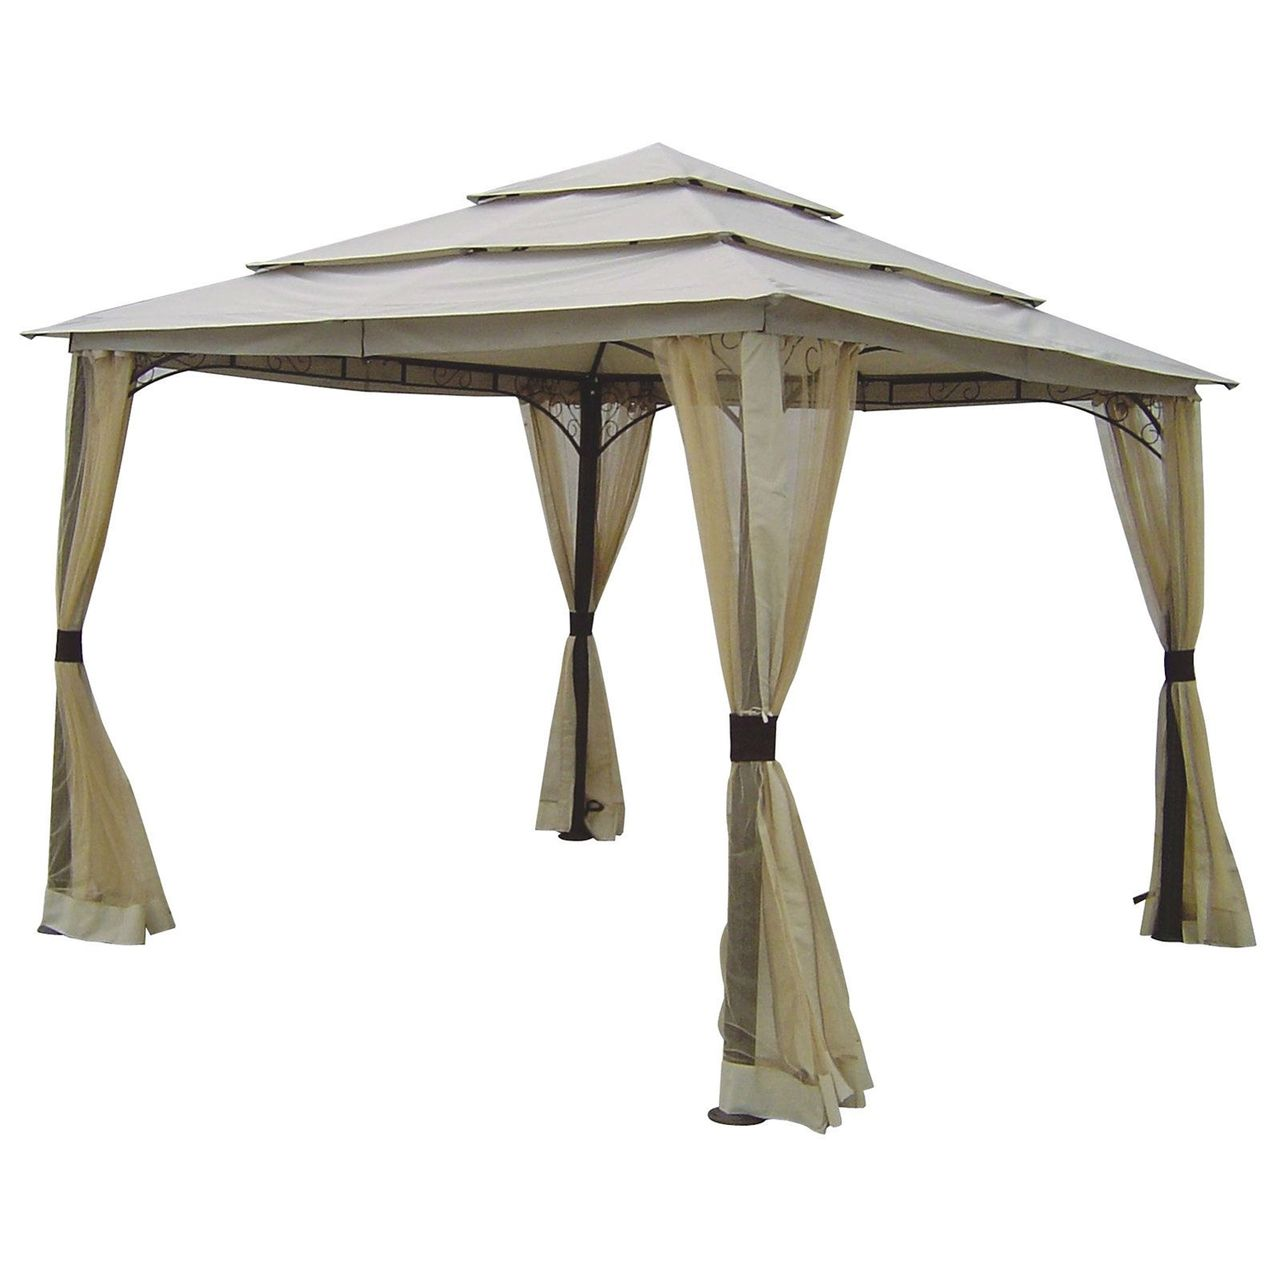 10 Ft X 10 Ft Outdoor Steel Frame Gazebo With Mosquito Netting Screen And Canopy Gazebo Gazebo Pergola Gazebo Replacement Canopy